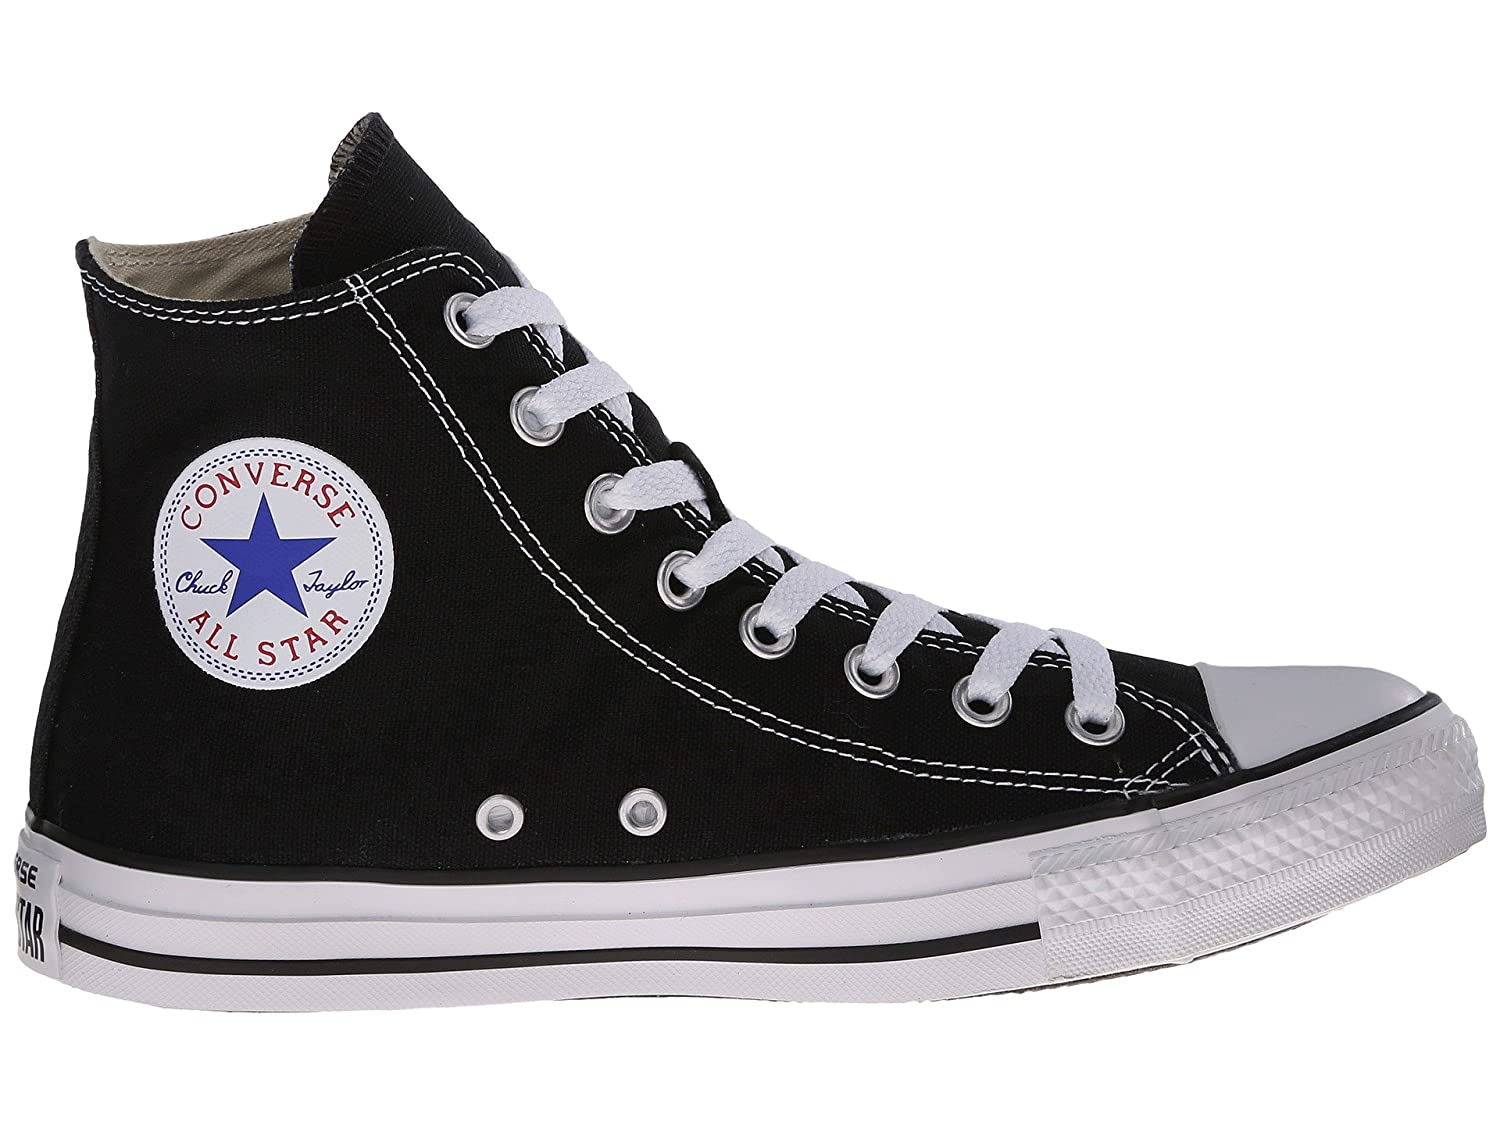 90bfe3d1ca10 Chuck Taylor All Star Classic Colors The Chuck Taylor All Star high top is  the most iconic sneaker in the world